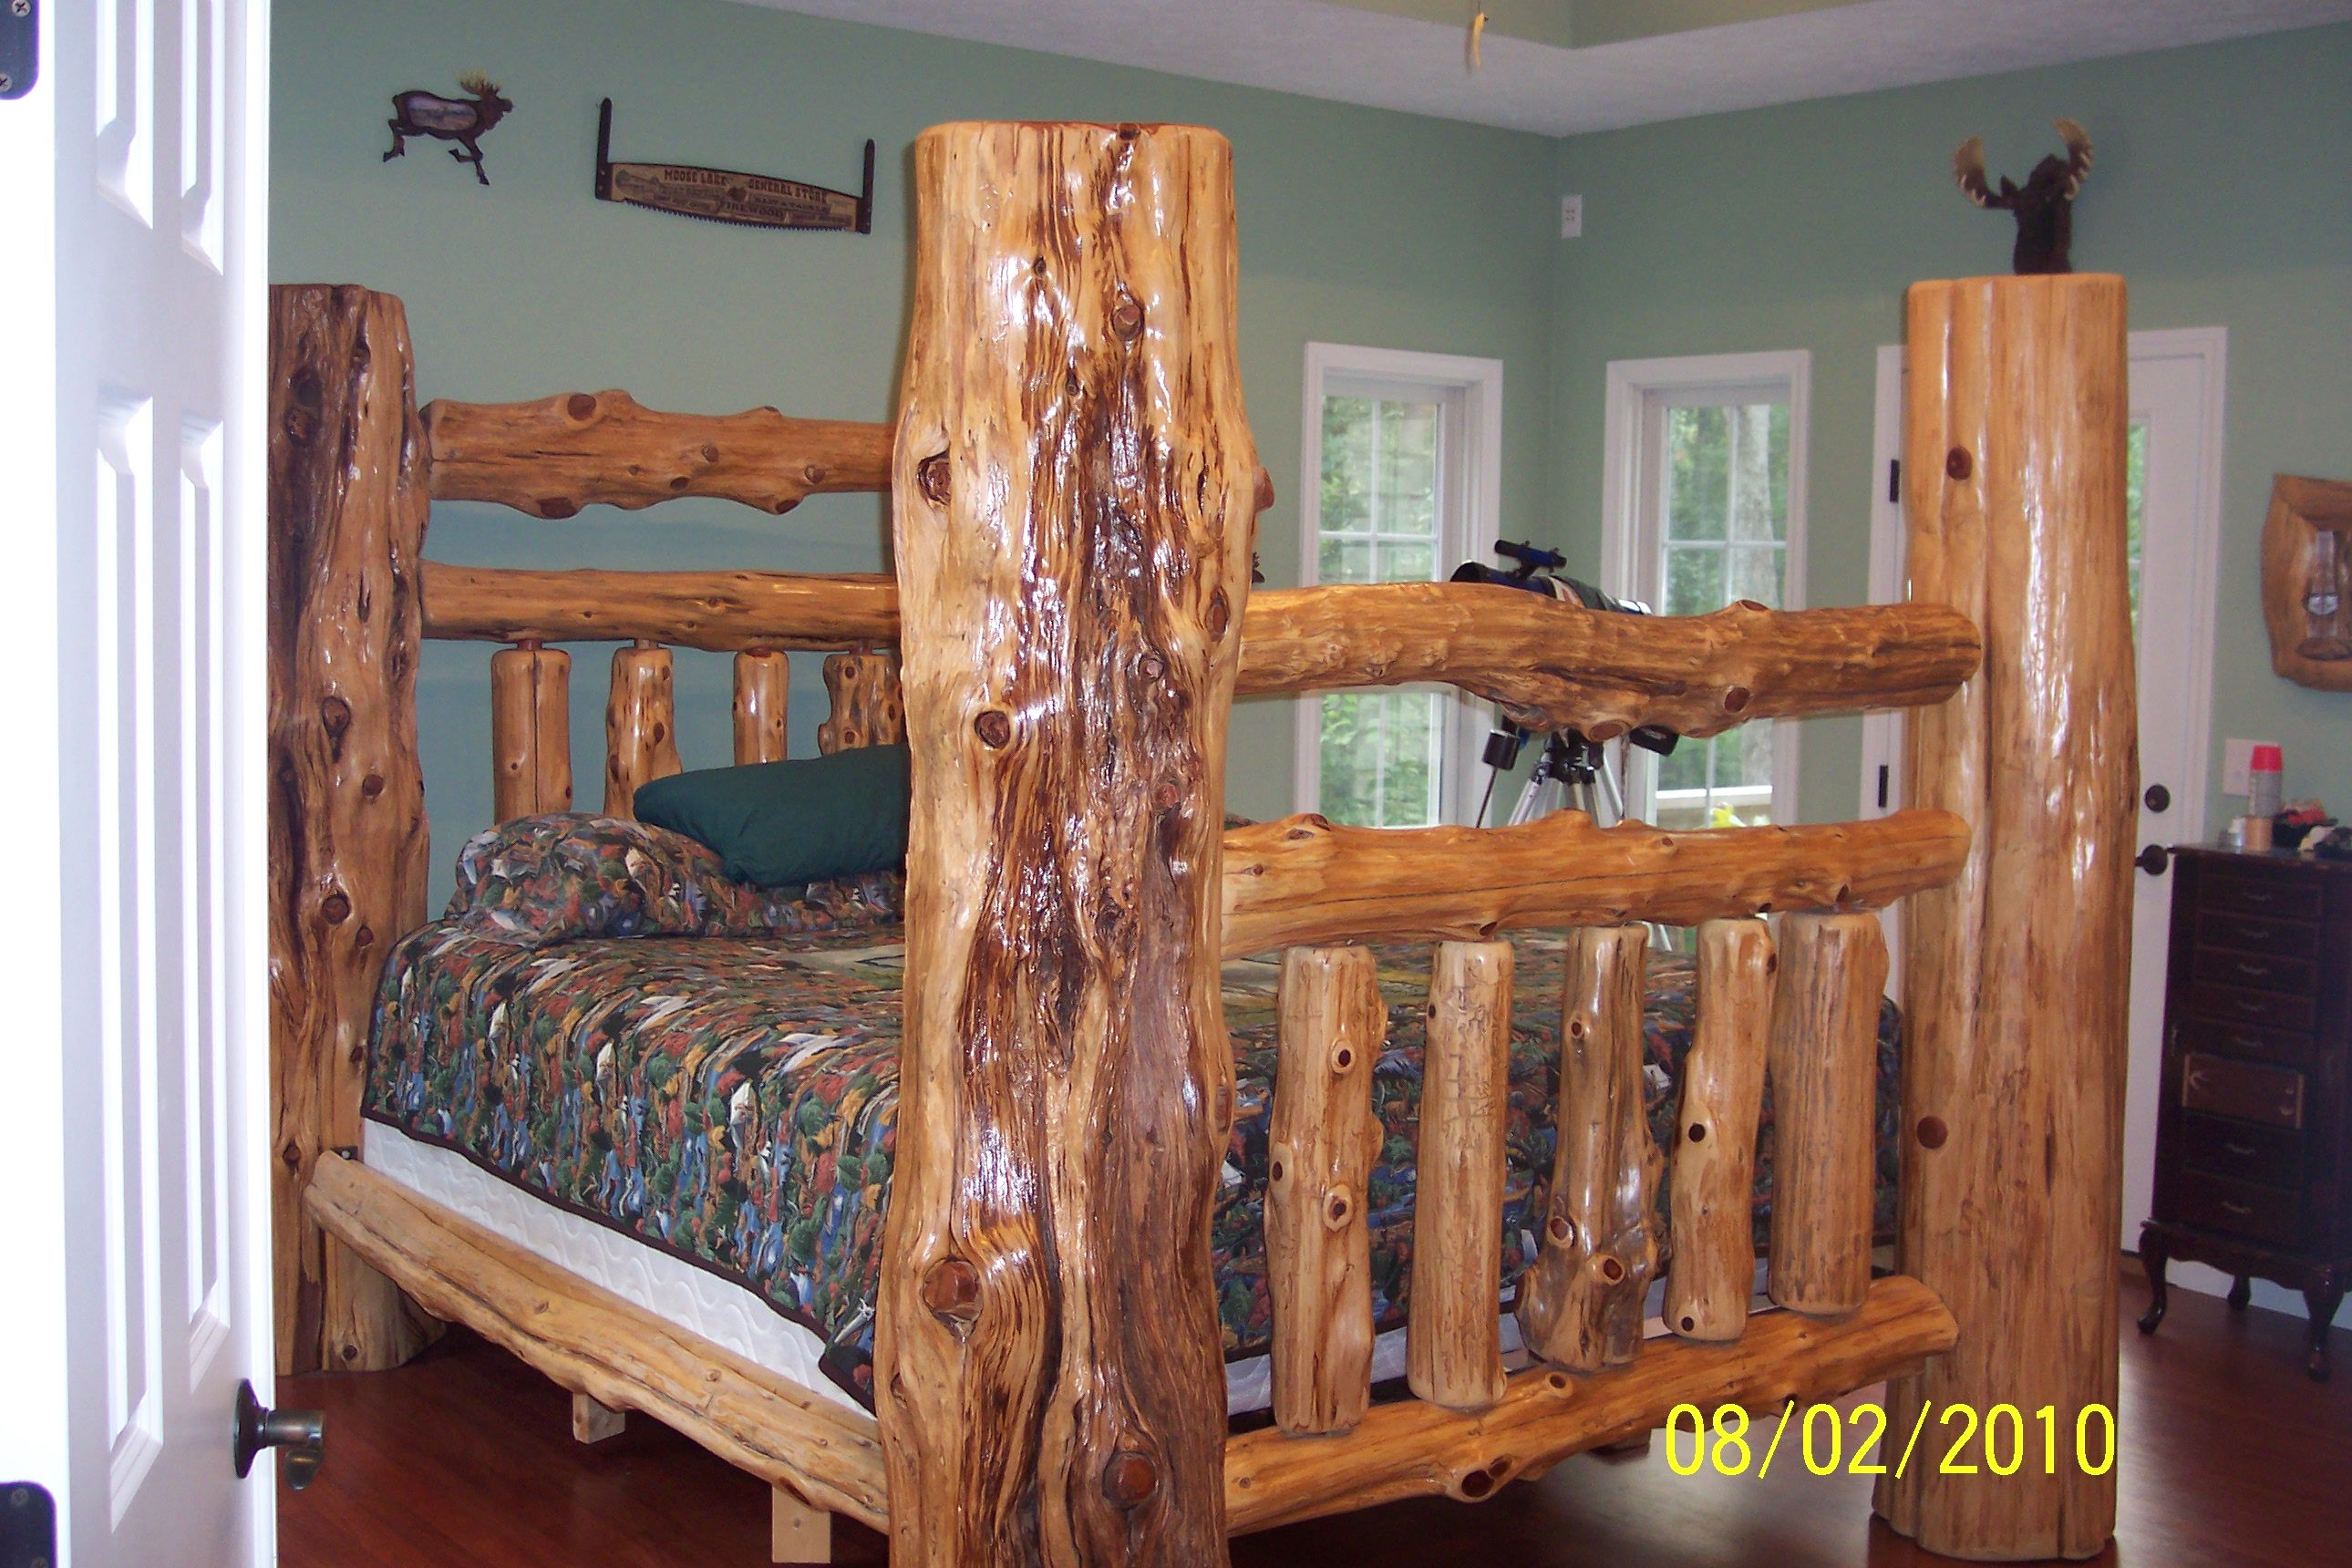 My king sized white cedar log bed, one of a kind Log